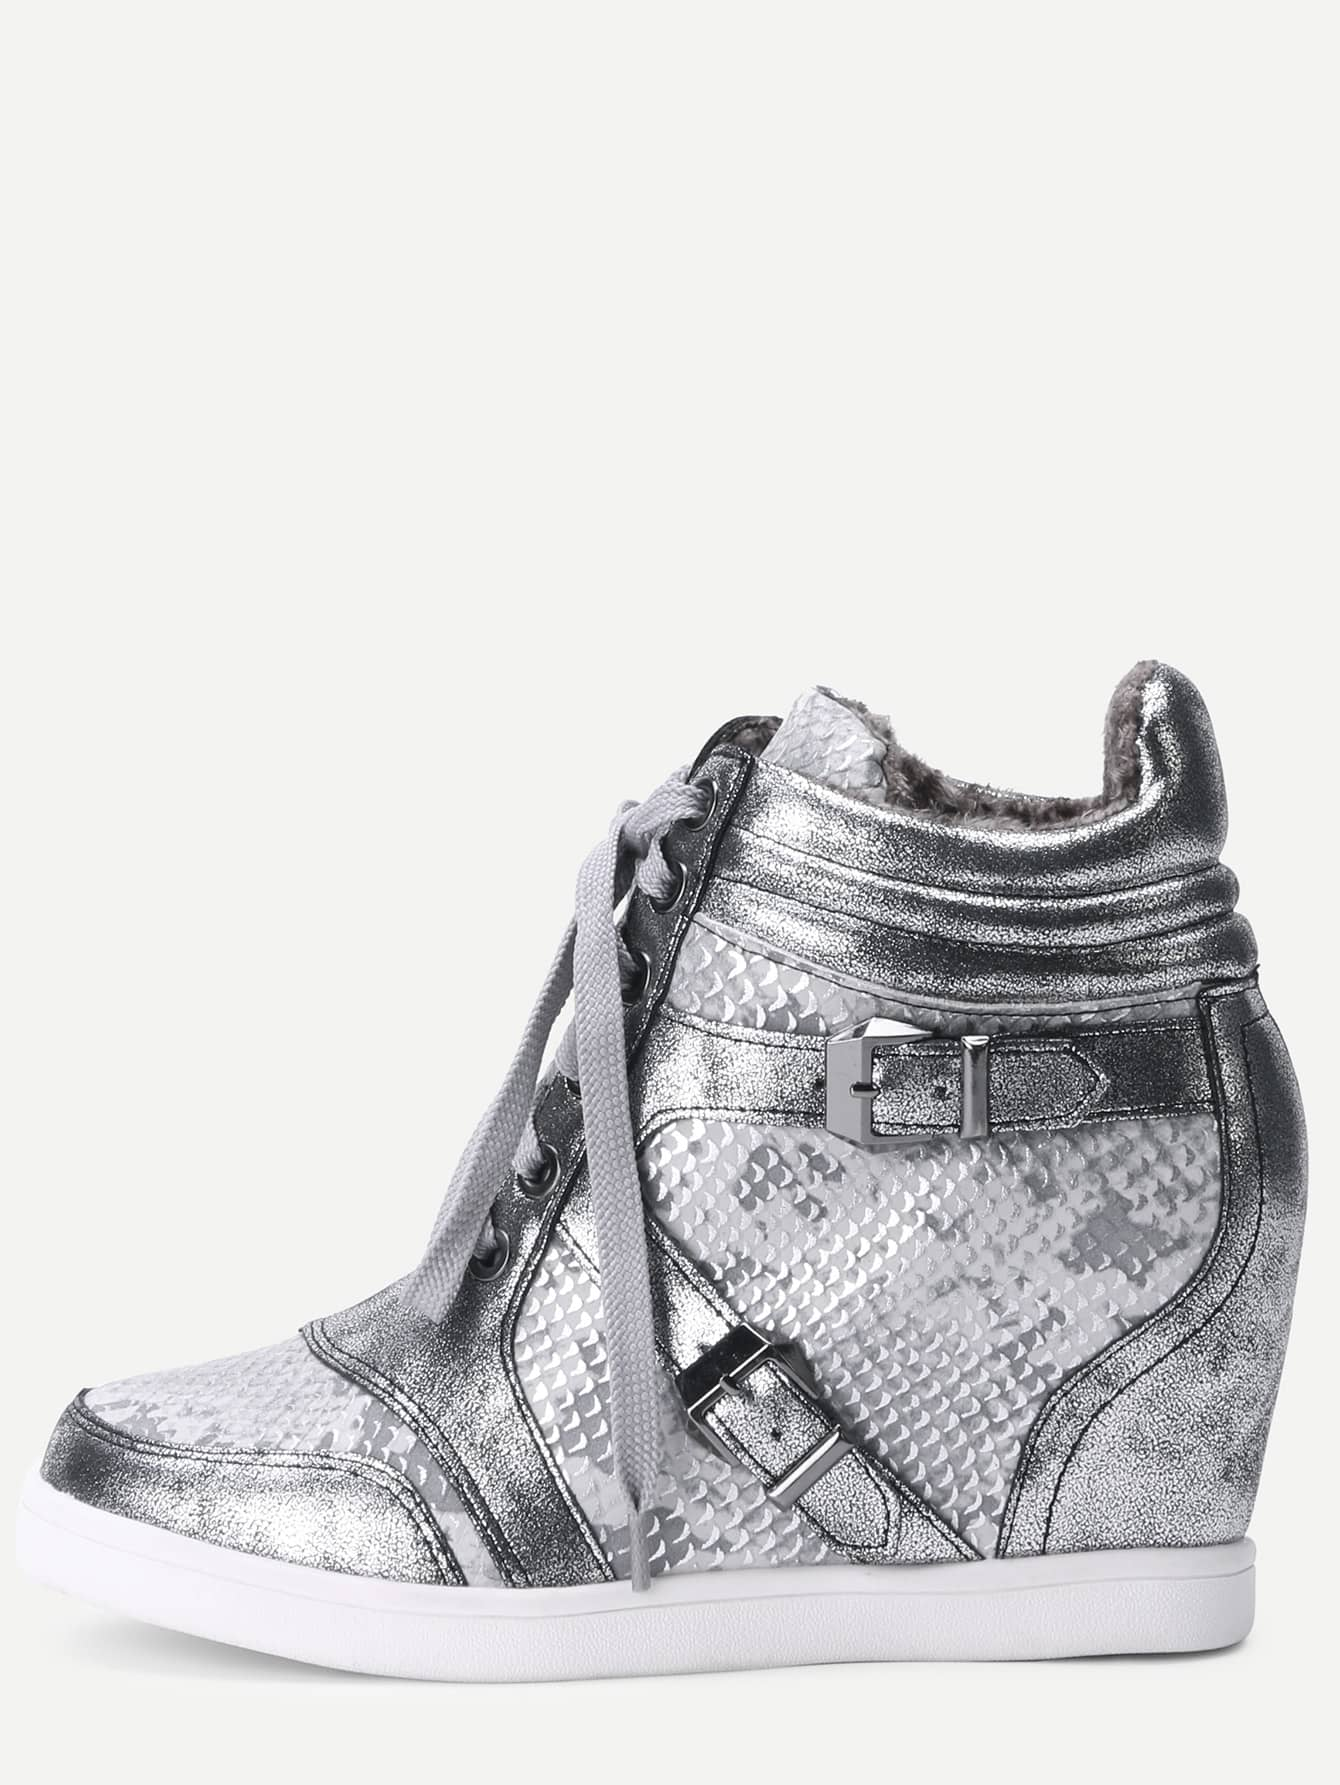 Silver Snakeskin Round Toe Lace-up High Top Wedges shoes160715811